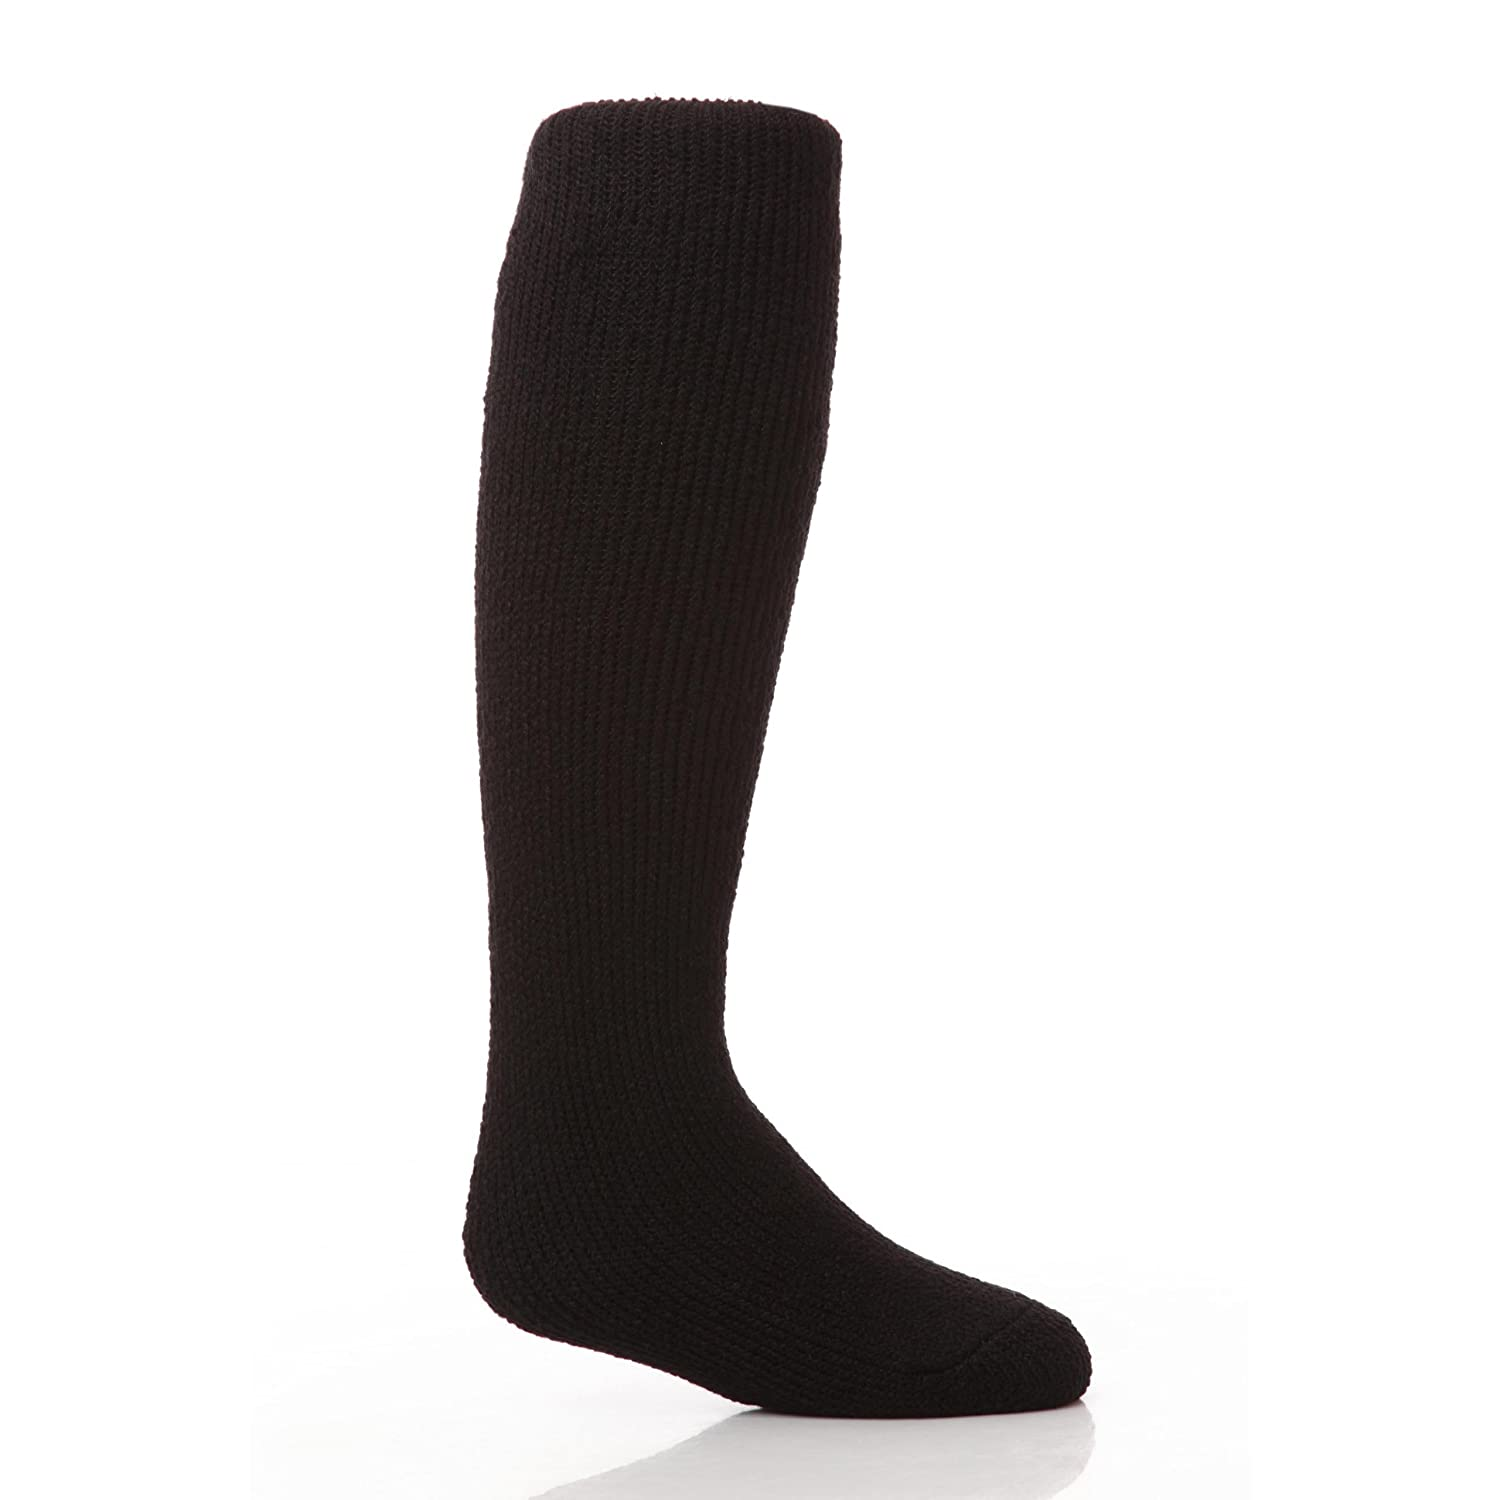 Kinder Unisex Thermo Socken, extra Lang (1 Paar)